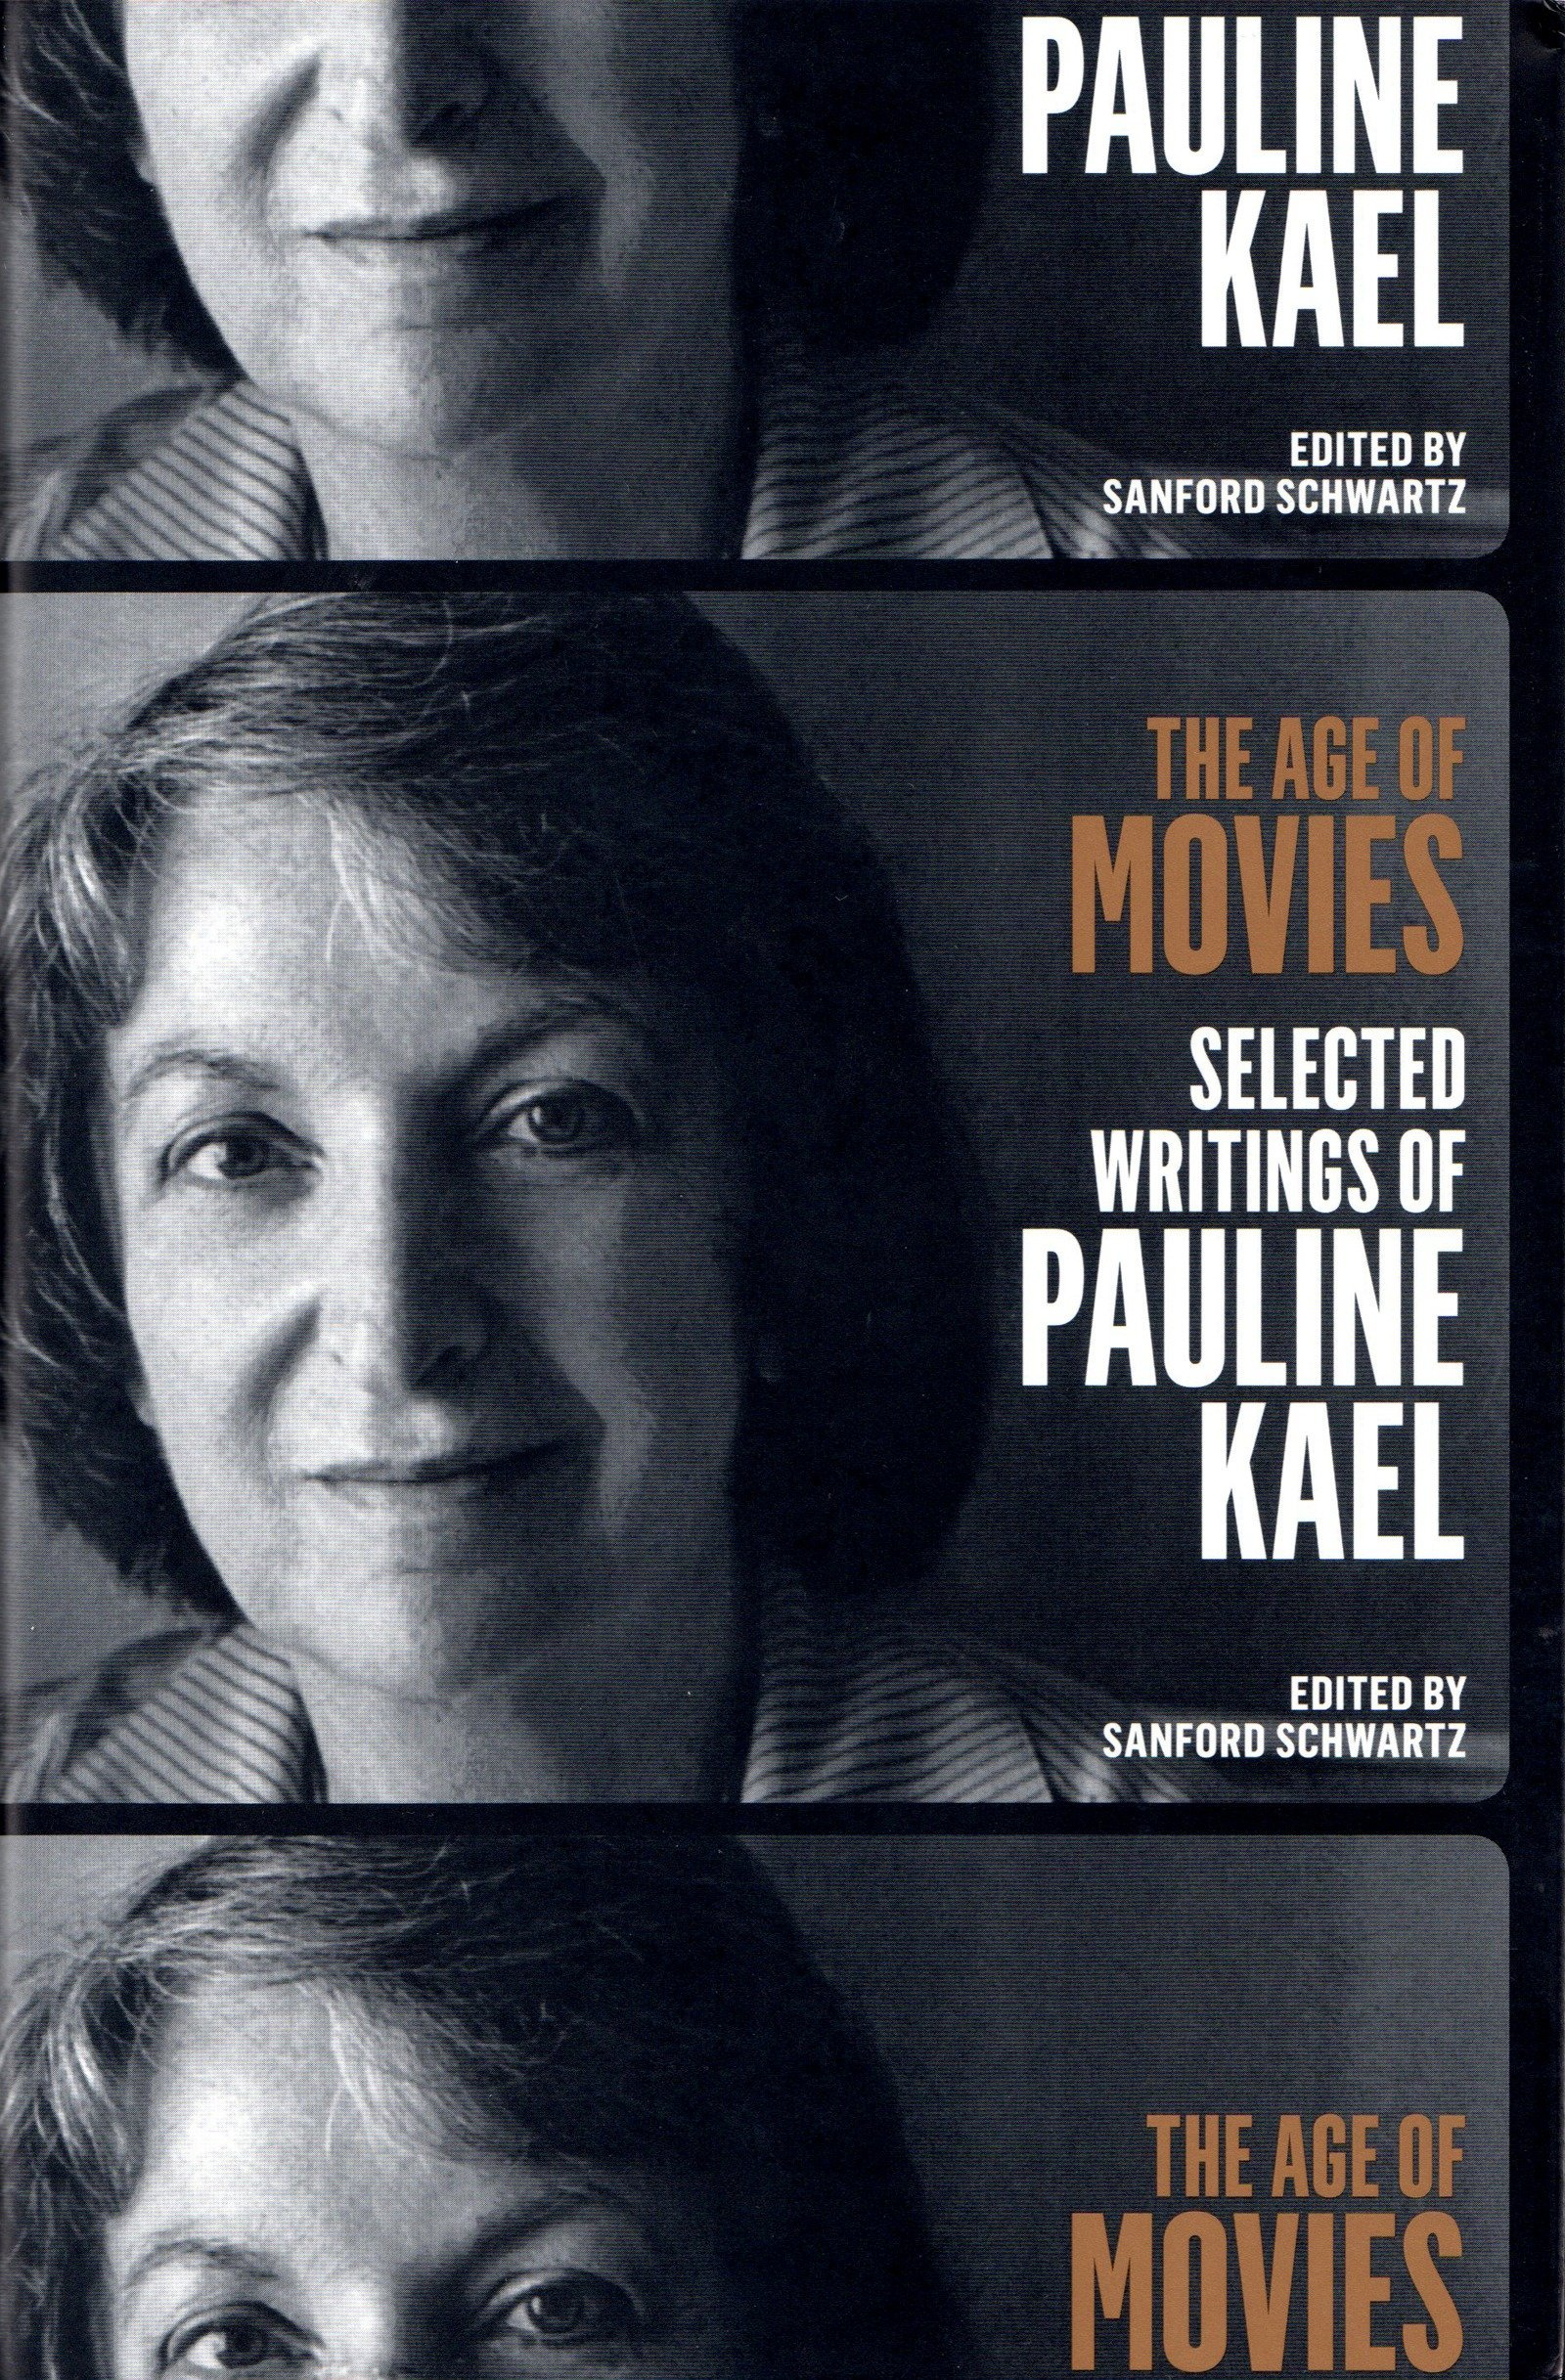 The Age Of Movies  Selected Writings Of Pauline Kael  A Library Of America Special Publication